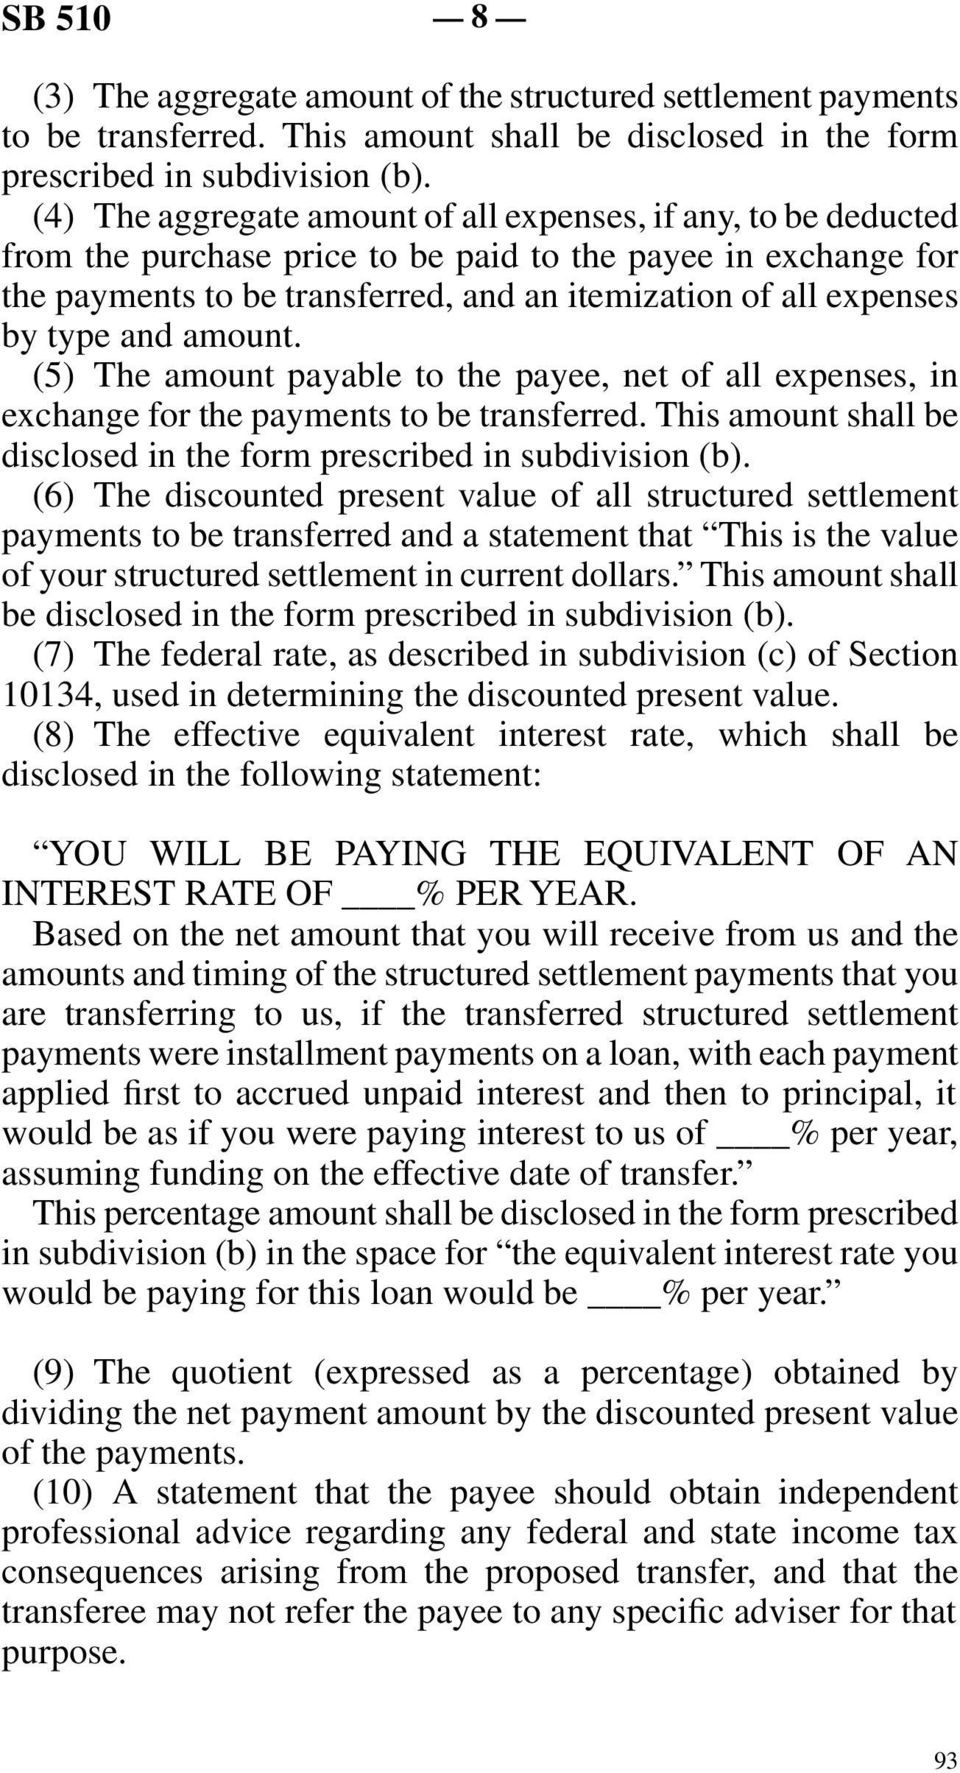 type and amount. (5) The amount payable to the payee, net of all expenses, in exchange for the payments to be transferred. This amount shall be disclosed in the form prescribed in subdivision (b).